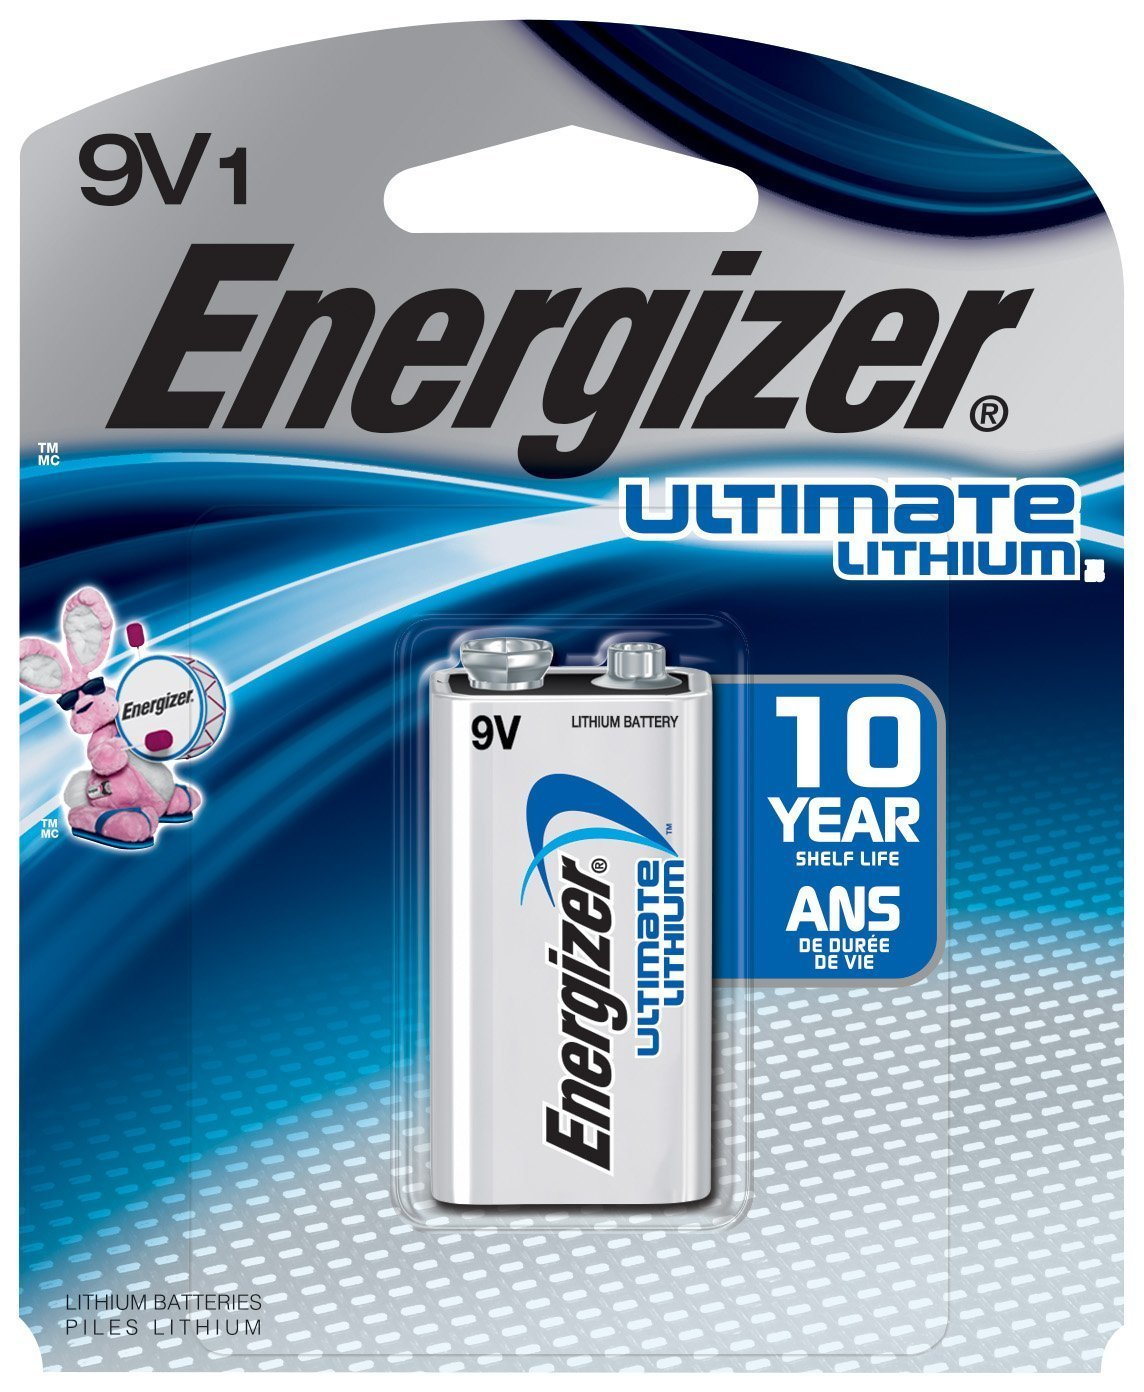 Eveready Battery L522BP Ultimate Lithium Battery, 9-Volt - Quantity 6